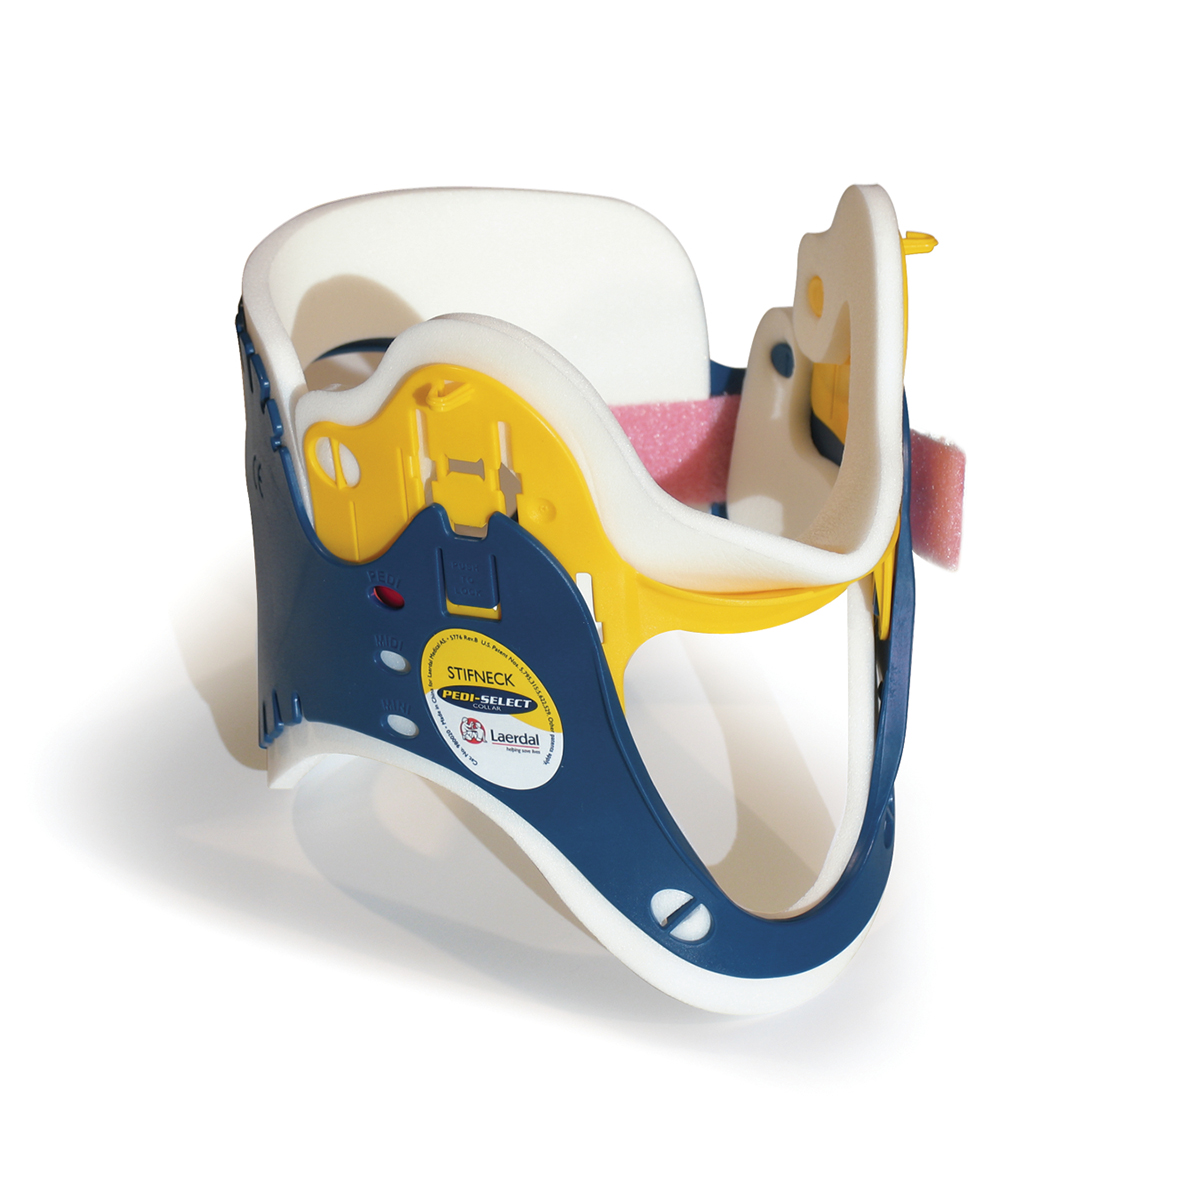 Paediatric Stifneck Select